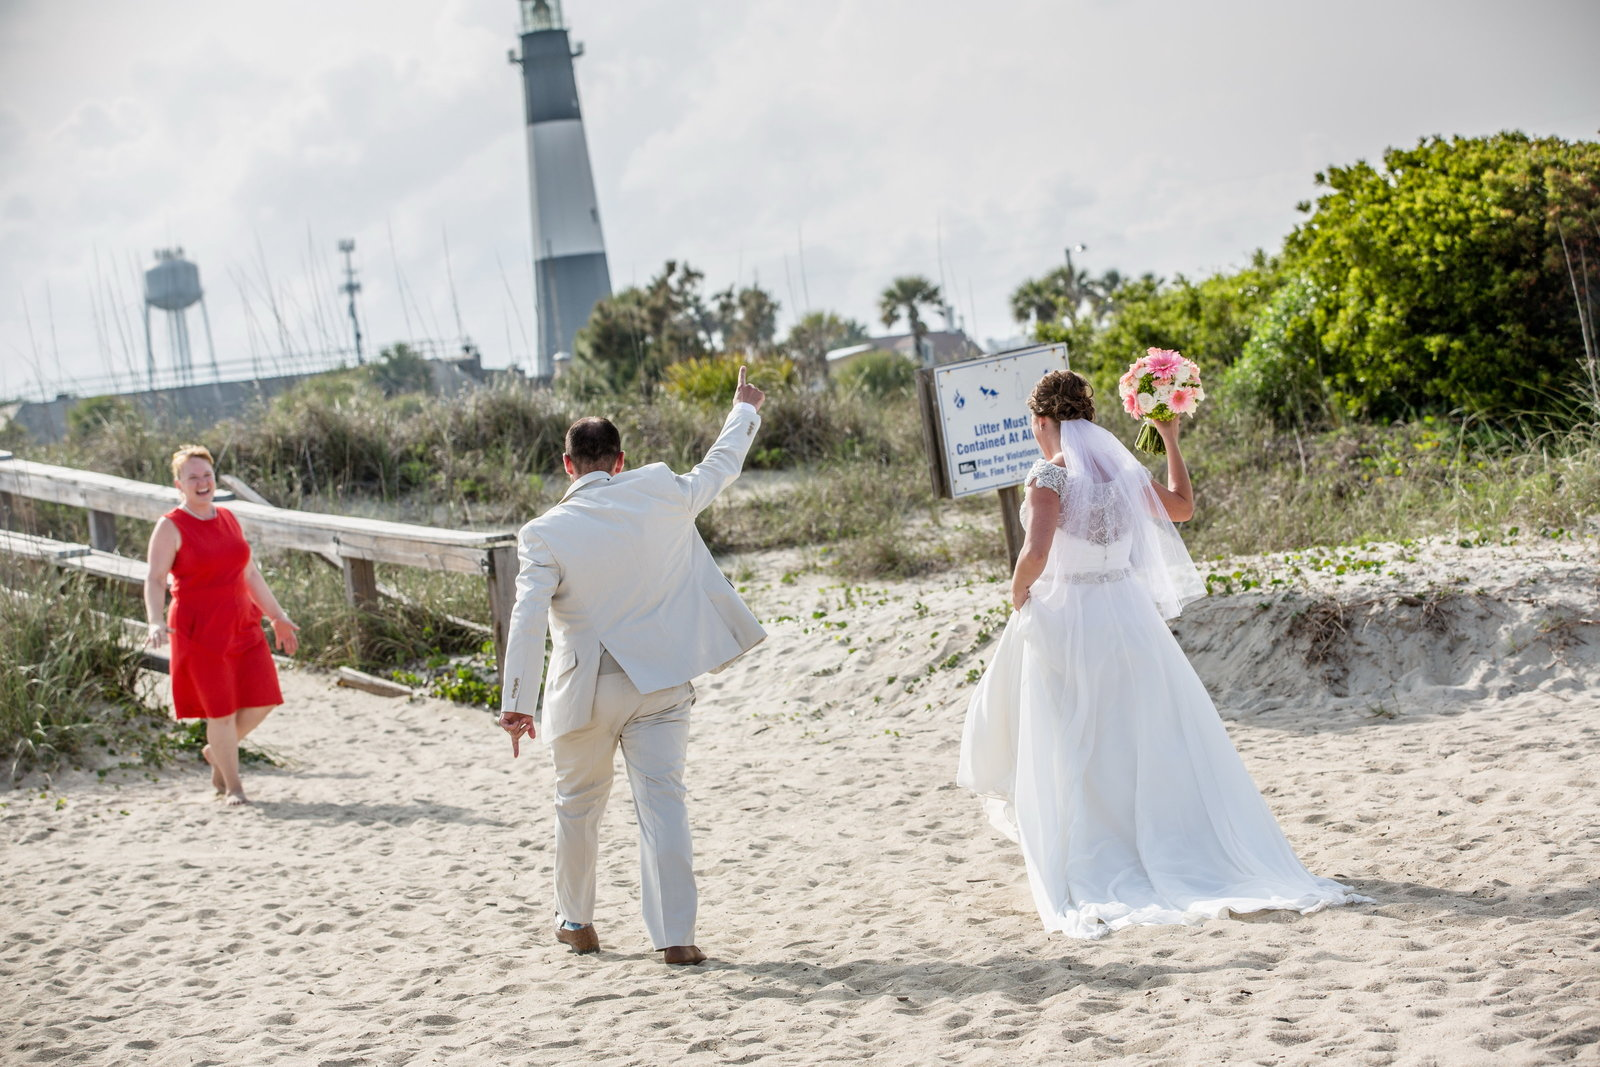 Tybee Island Wedding, Tony + Jennifer, Bobbi Brinkman Photography